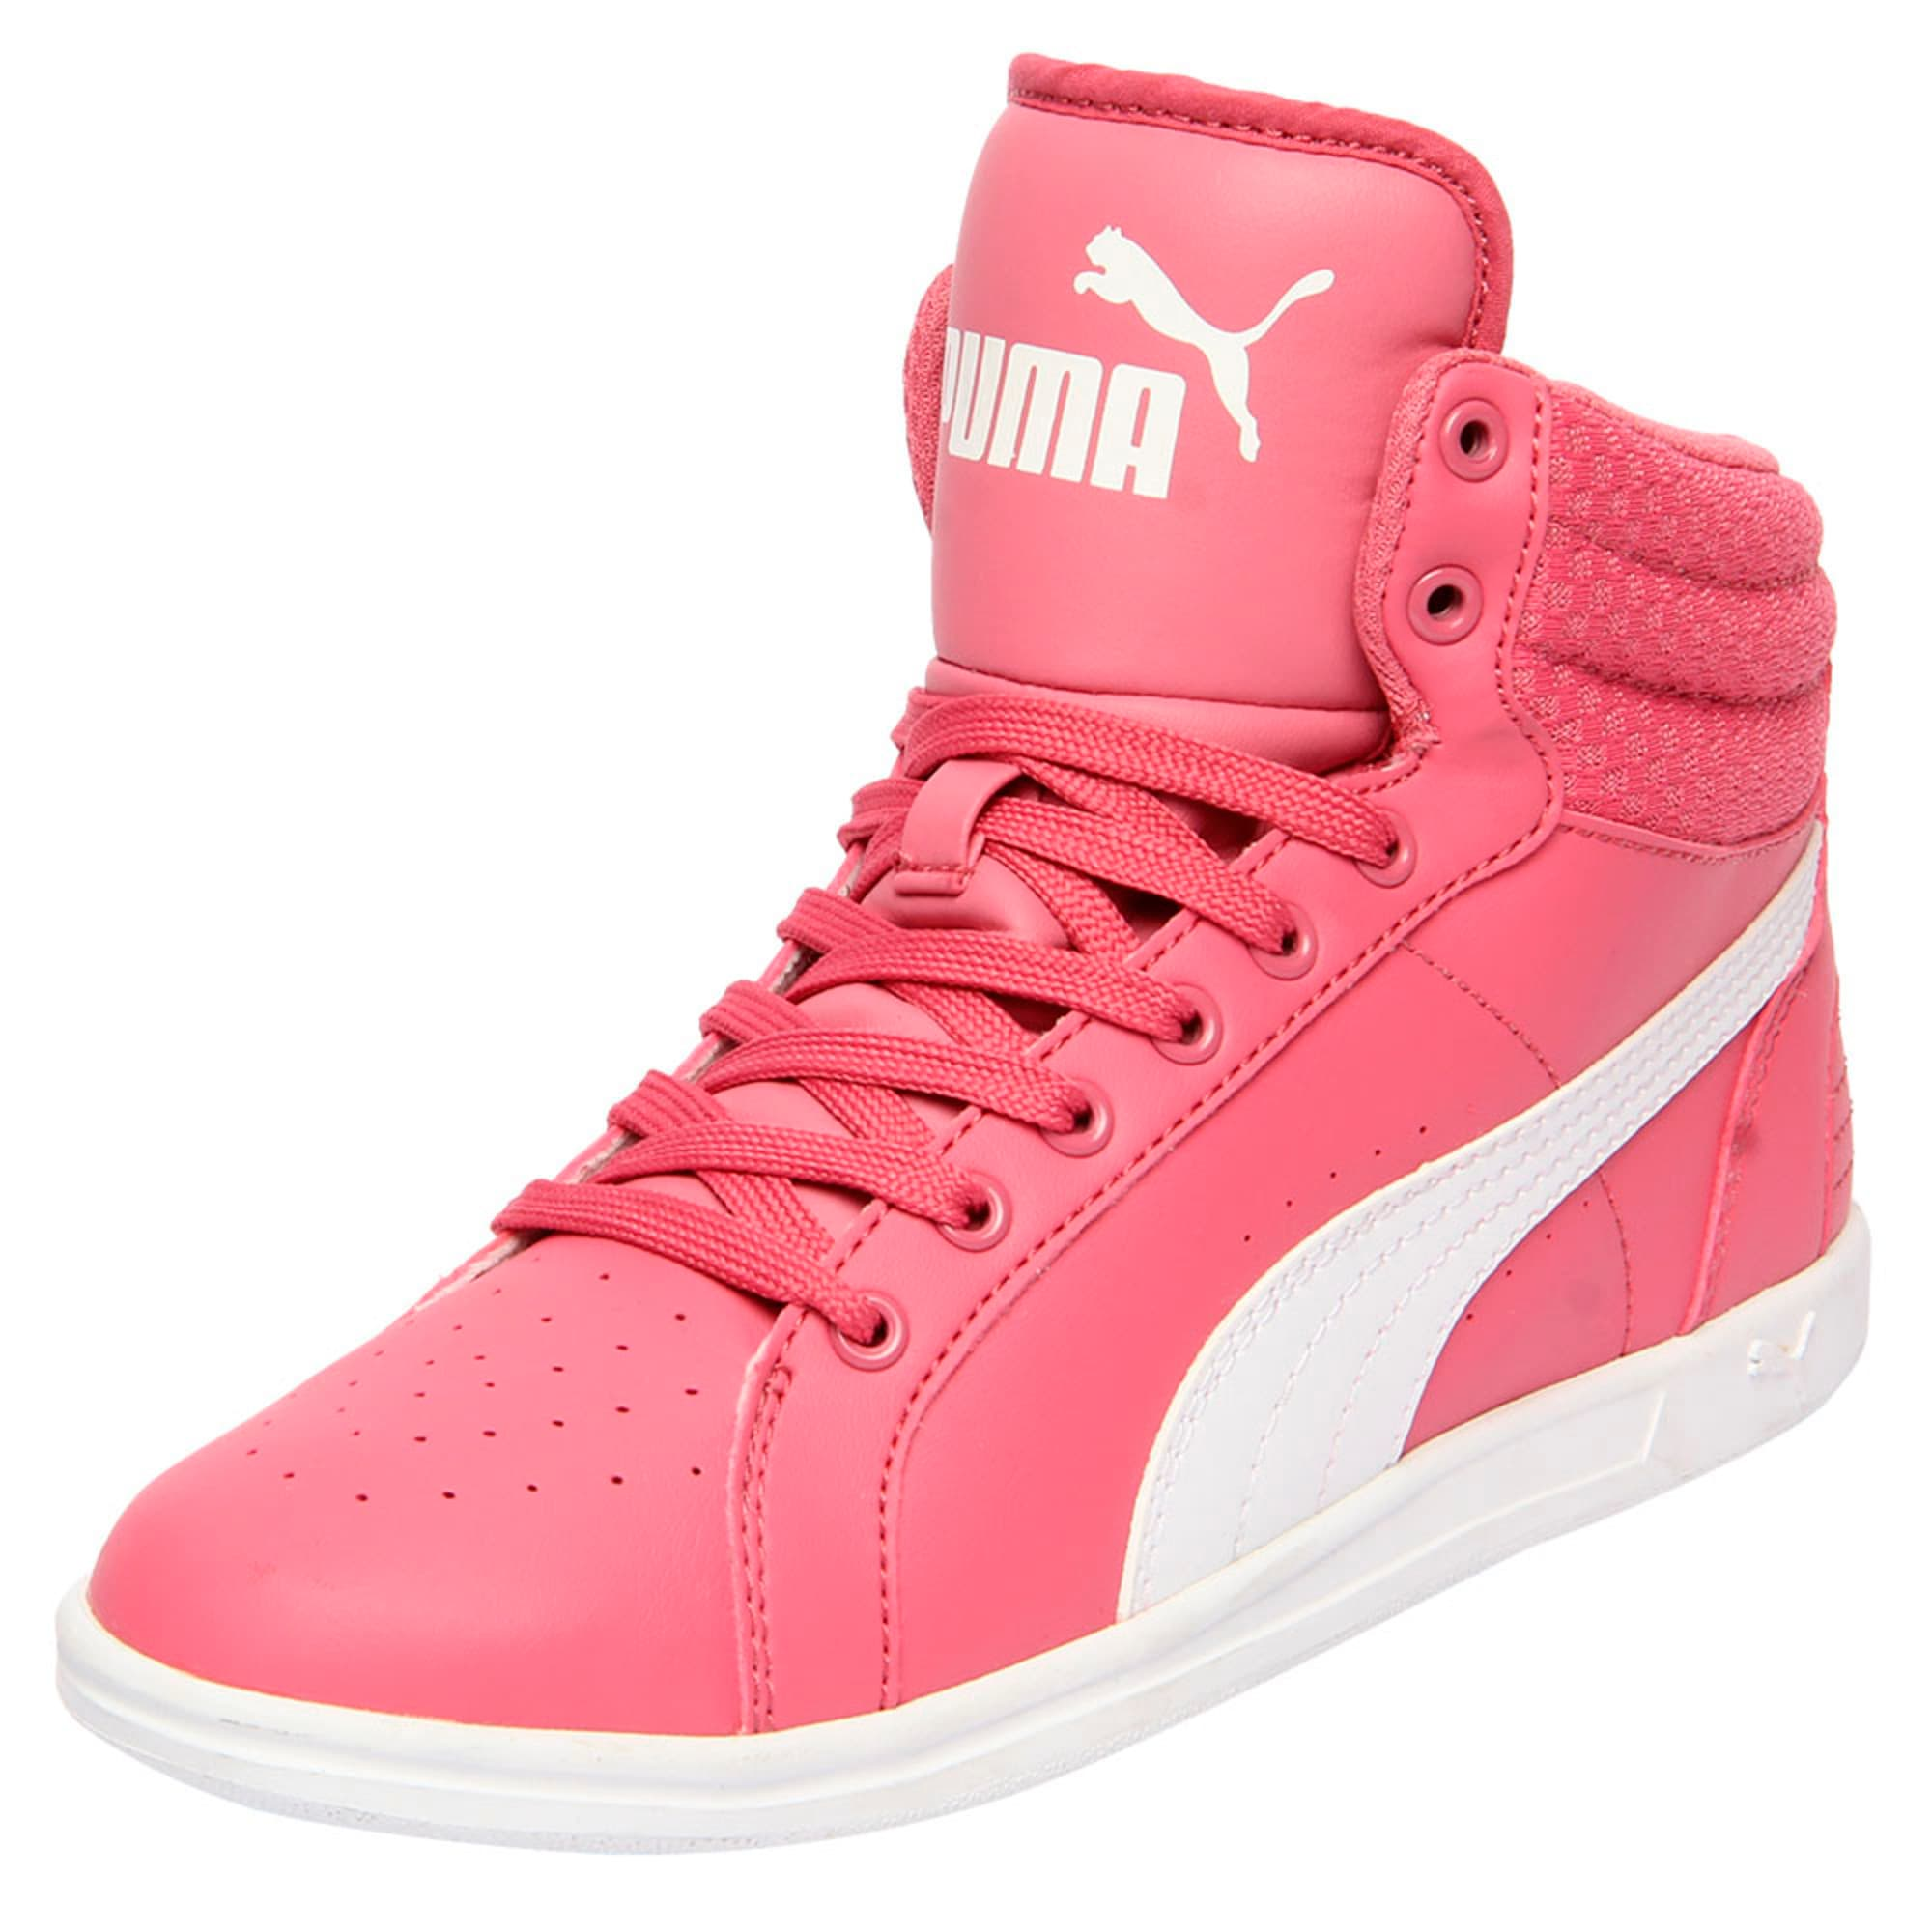 Thumbnail 1 of Puma Ikaz Mid v2 Jr, Rapture Rose-Puma White, medium-IND